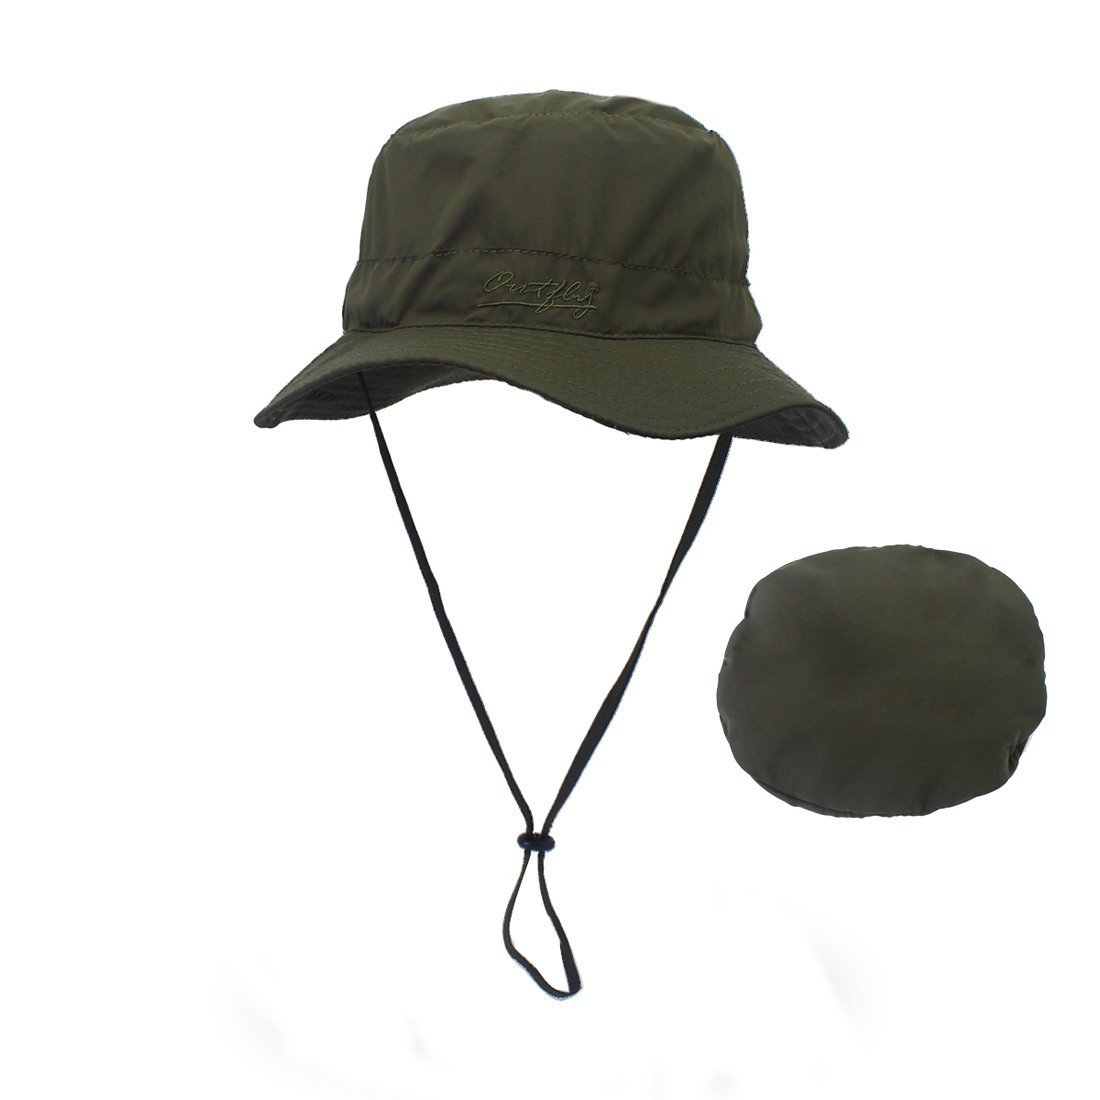 Outdoor Bucket Hats for Women Adjustable Fishing Hat Boonie Breathable Sun  Hats Foldable Hat with Wide Brim for Camping at Amazon Women s Clothing  store  98945d126231